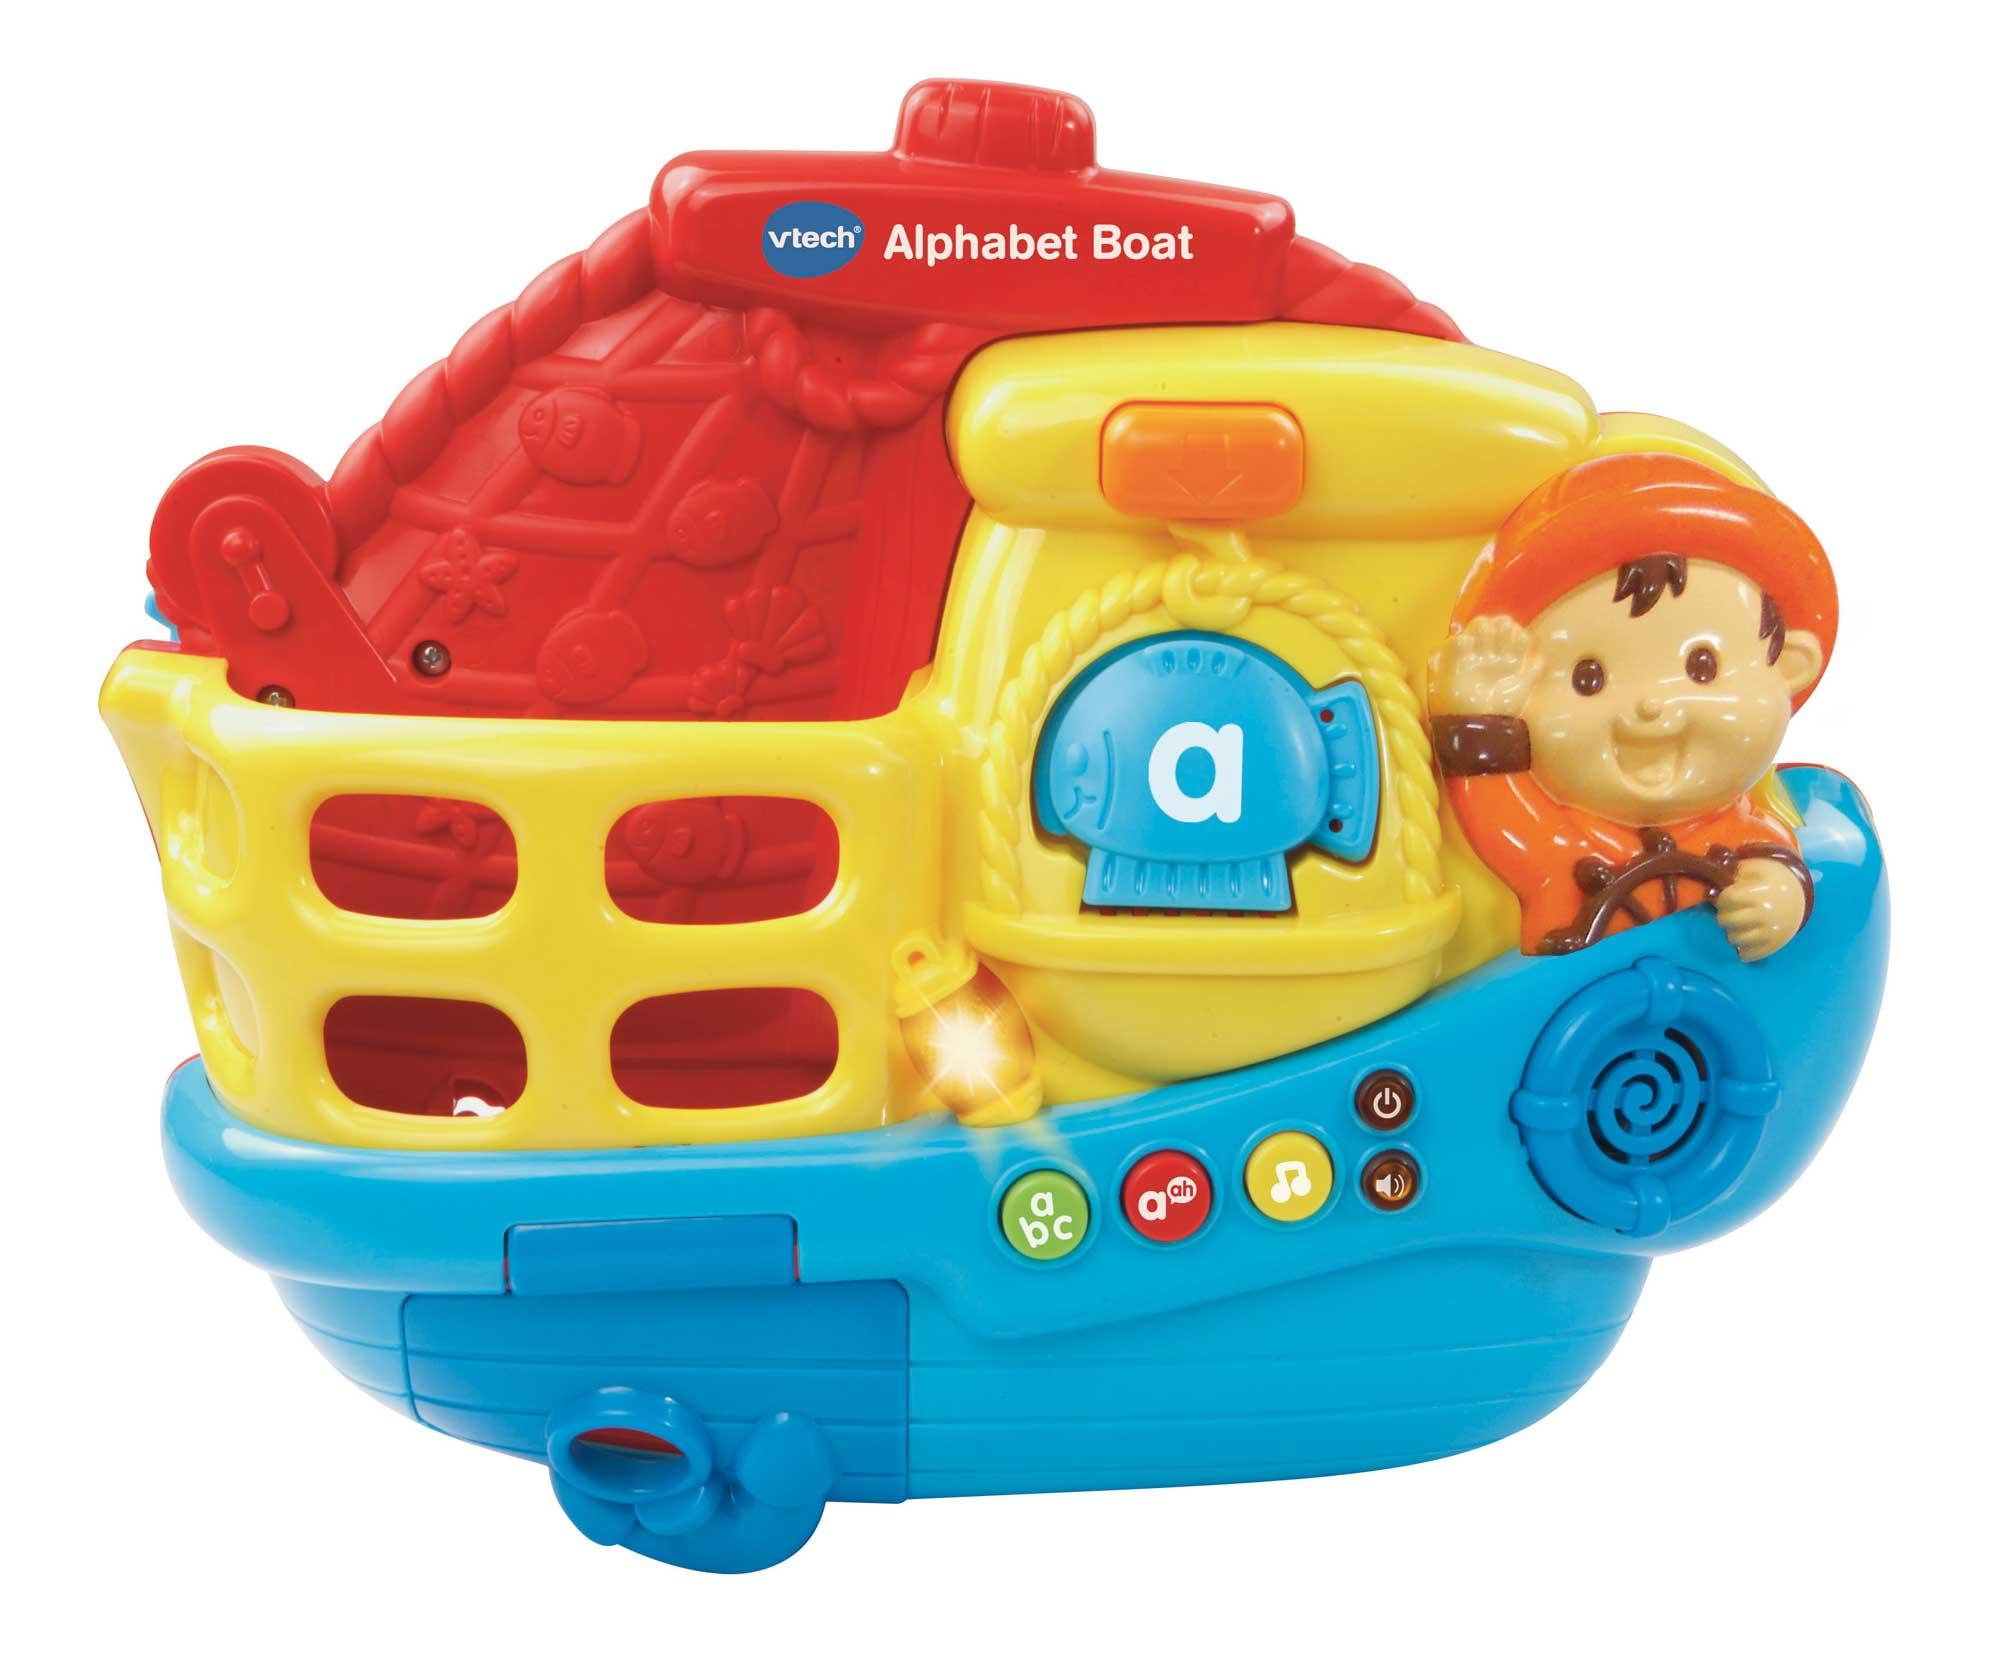 VTech Baby Alphabet Boat Bath Toy: Amazon.co.uk: Toys & Games